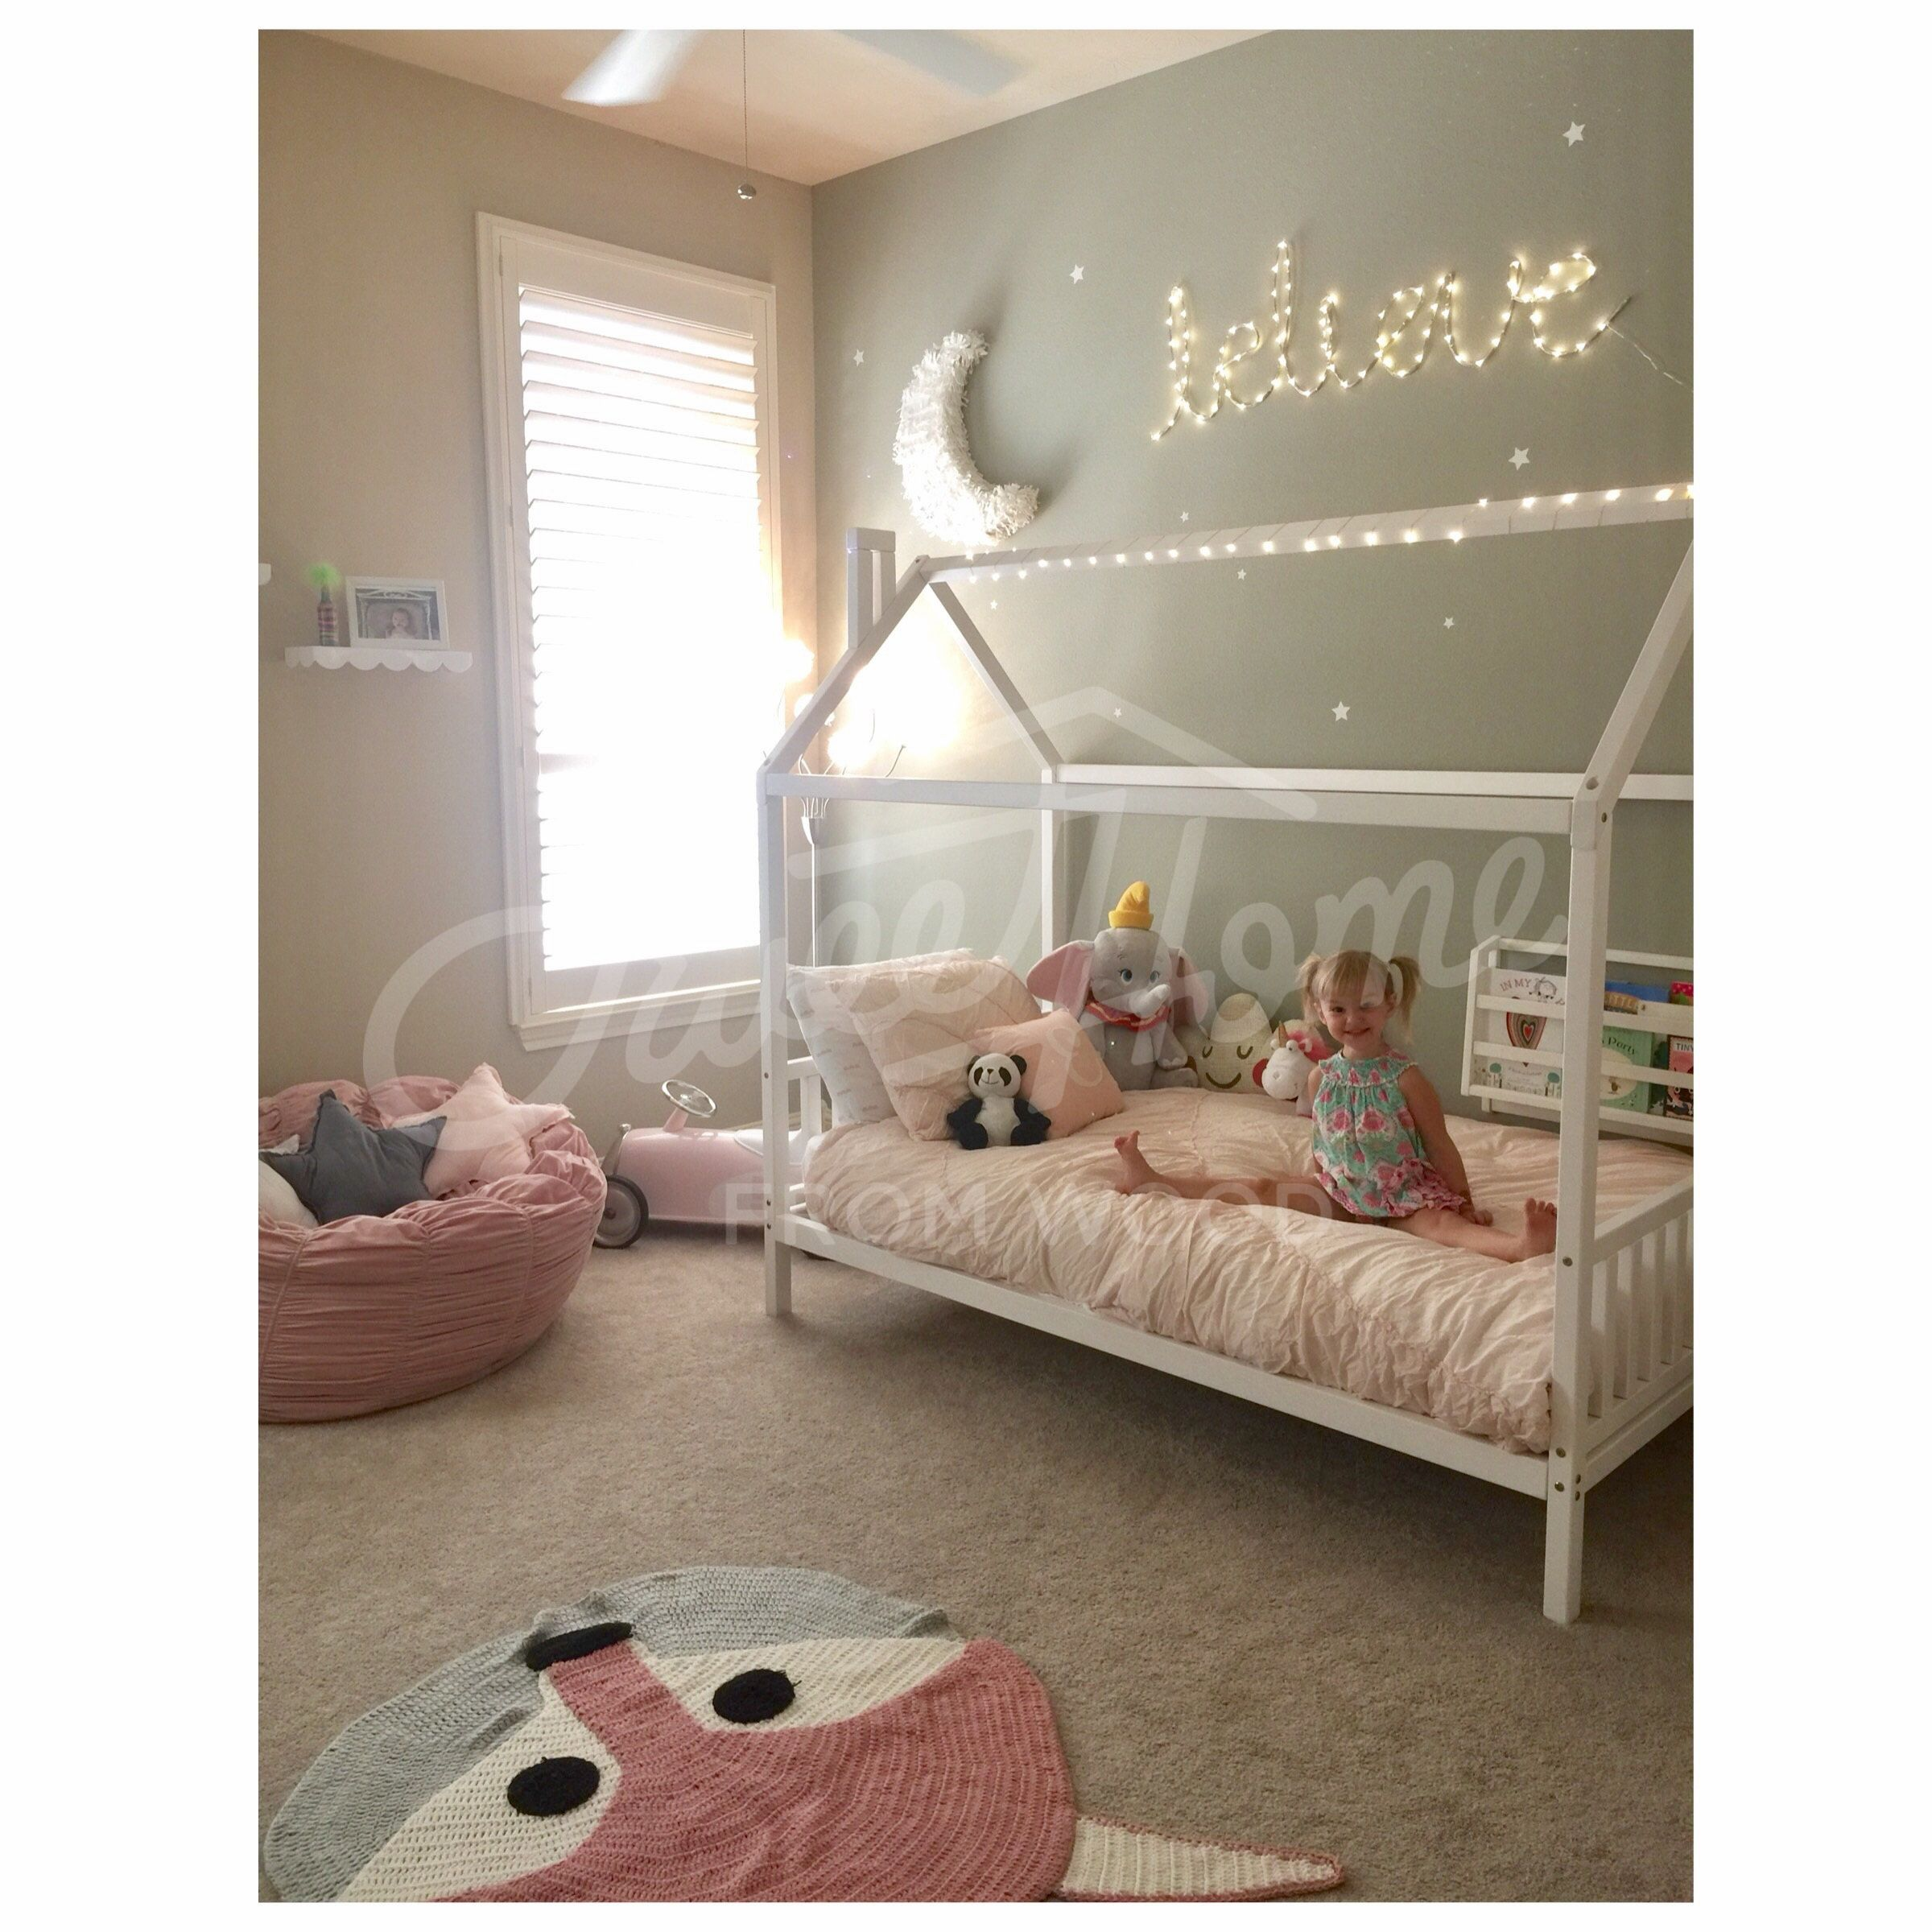 Girls Kids Childrens Wooden Nursery Bedroom Furniture Toy: Kids Teepee Children Bed House Or Toddler House Bed Frame